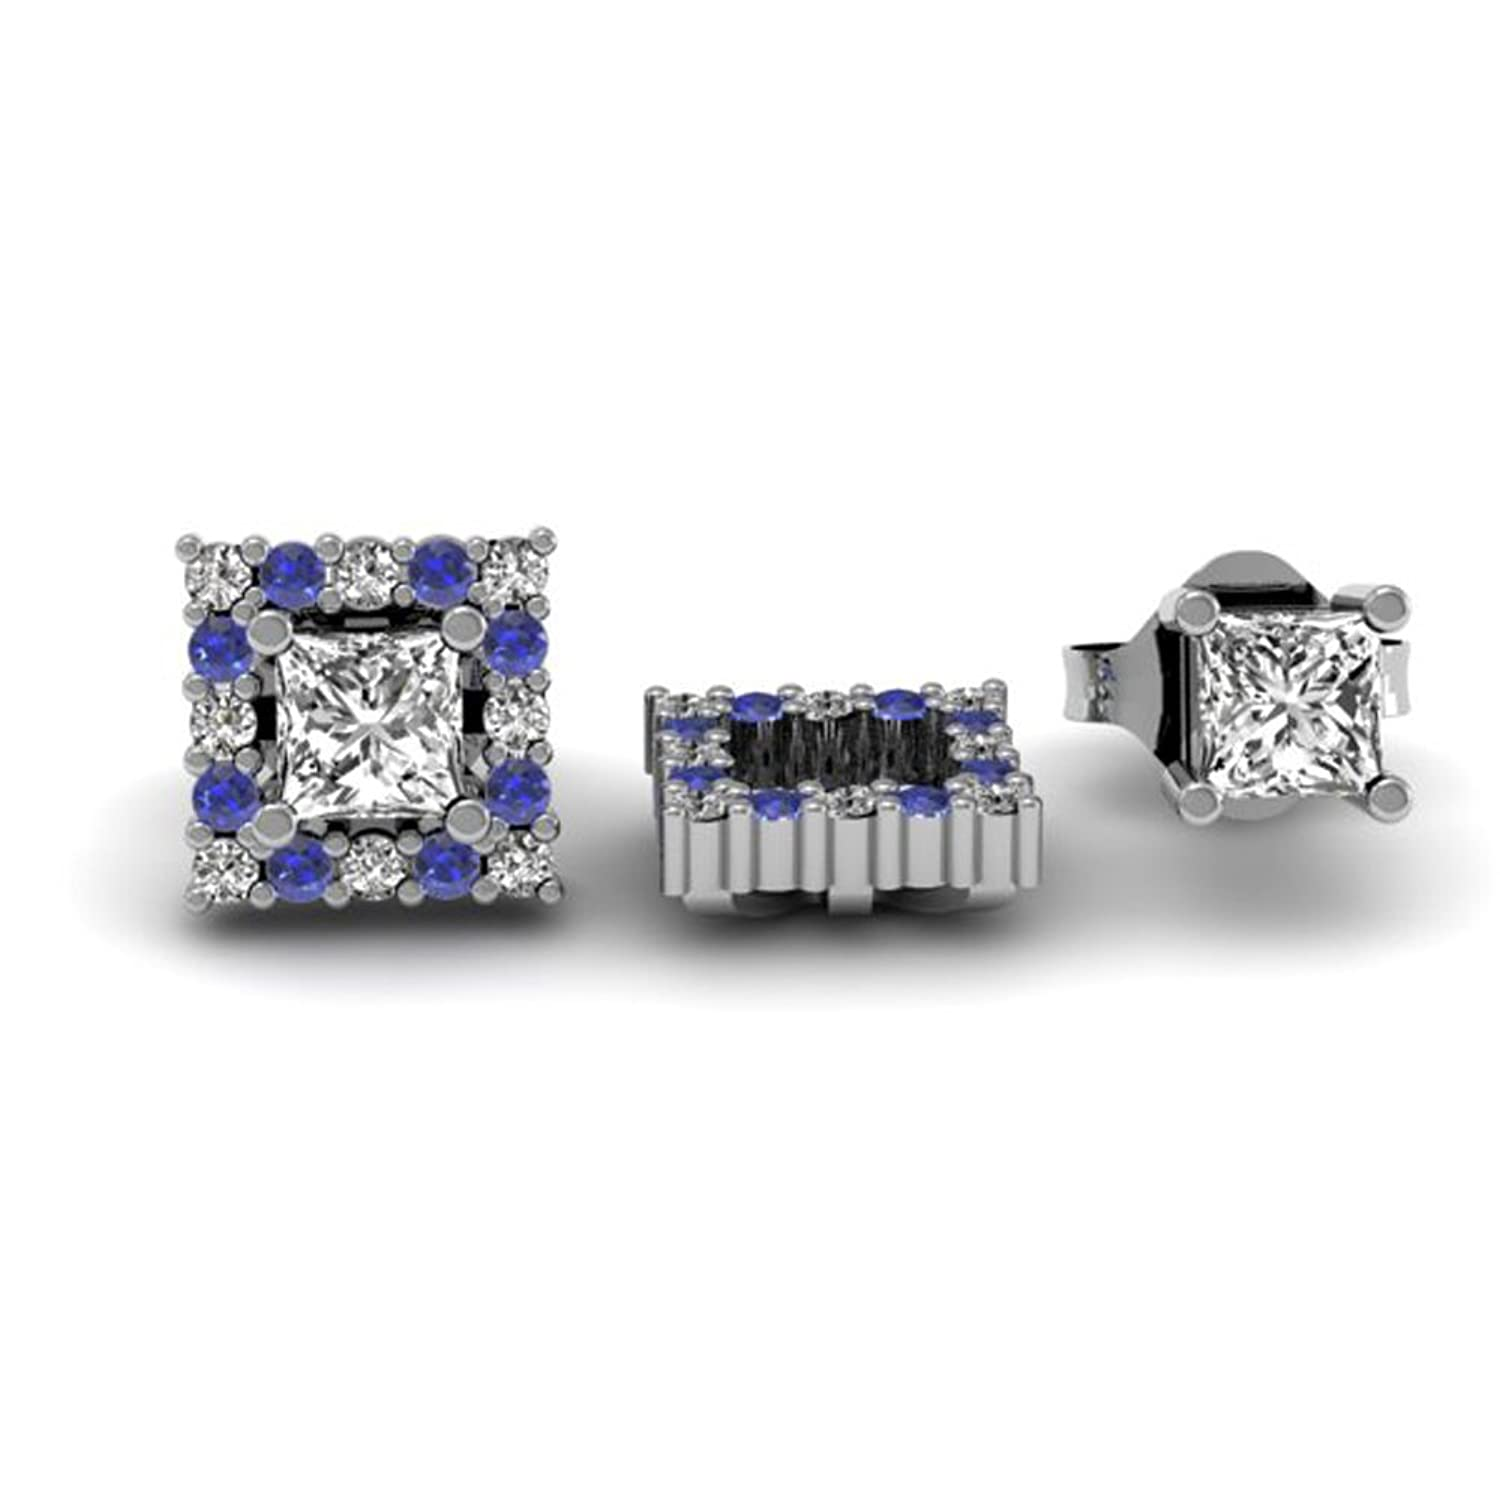 10K White Gold Square Shape Removable Jackets For Stud Earrings